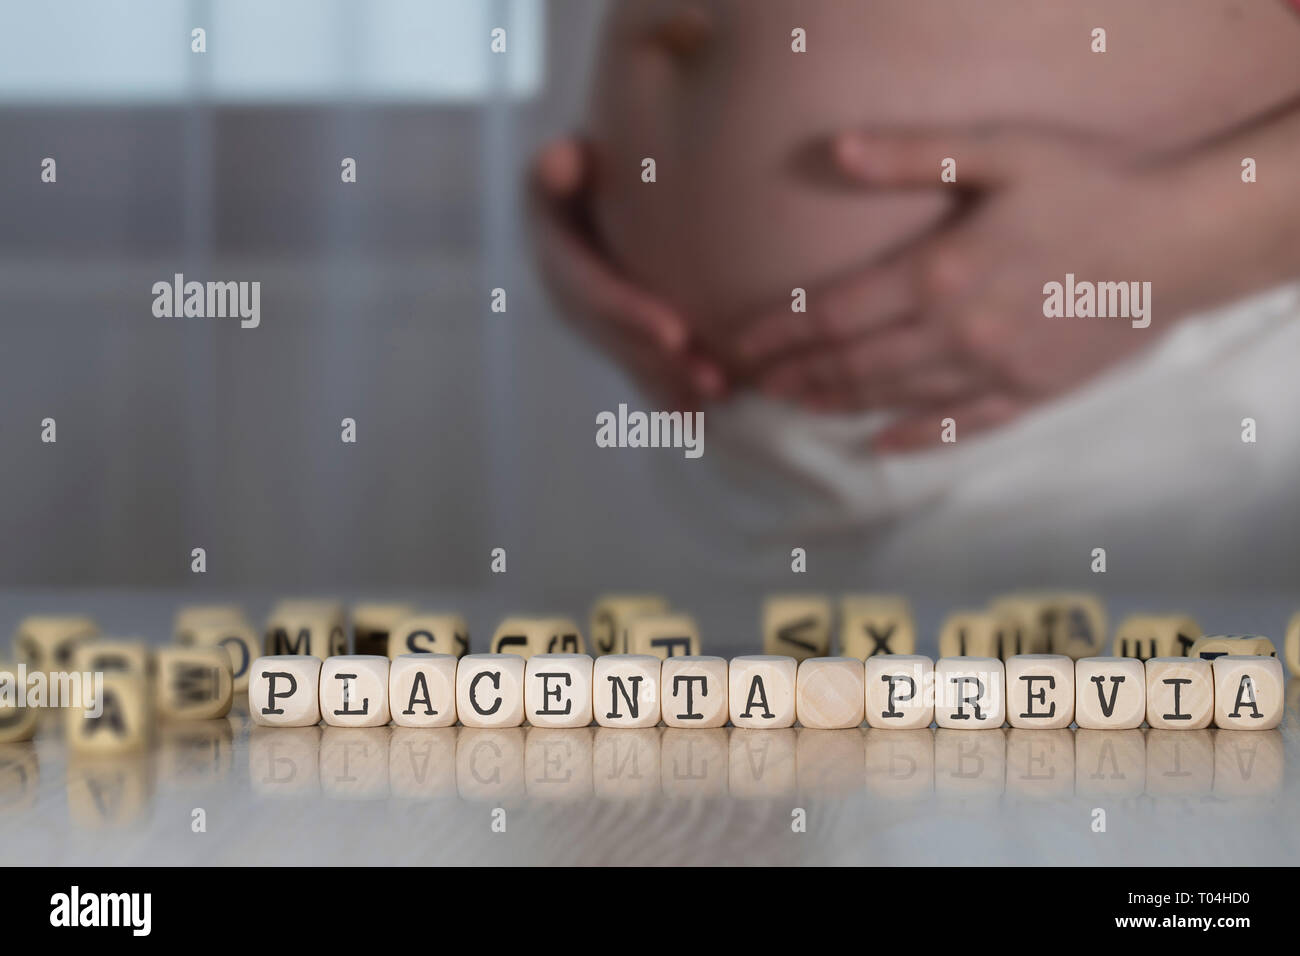 Words PLACENTA PREVIA  composed of wooden letters. Pregnant woman in the background - Stock Image